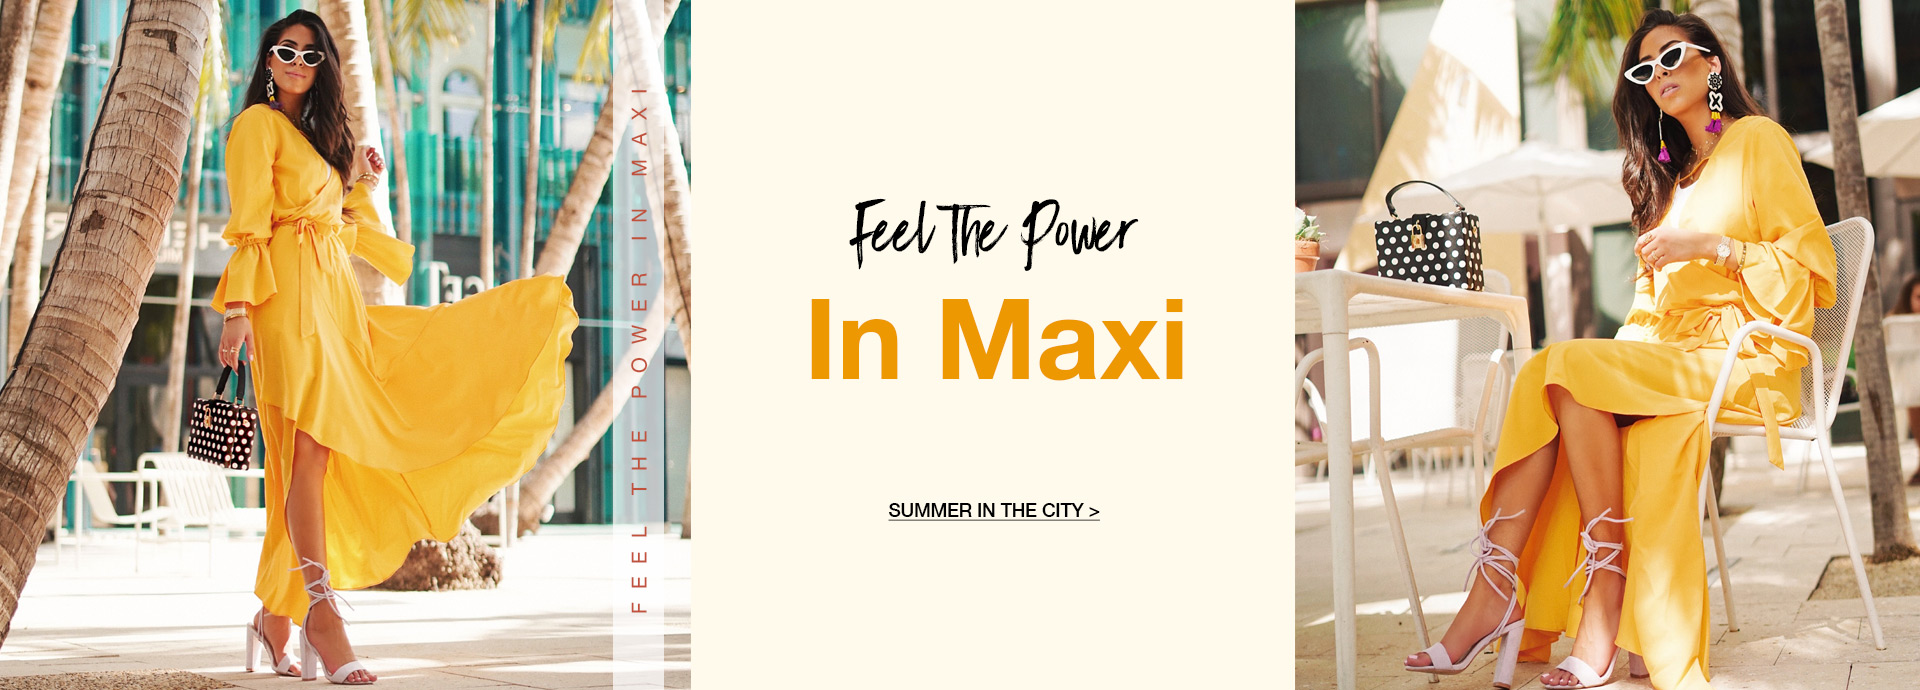 Feel The Power In Maxi